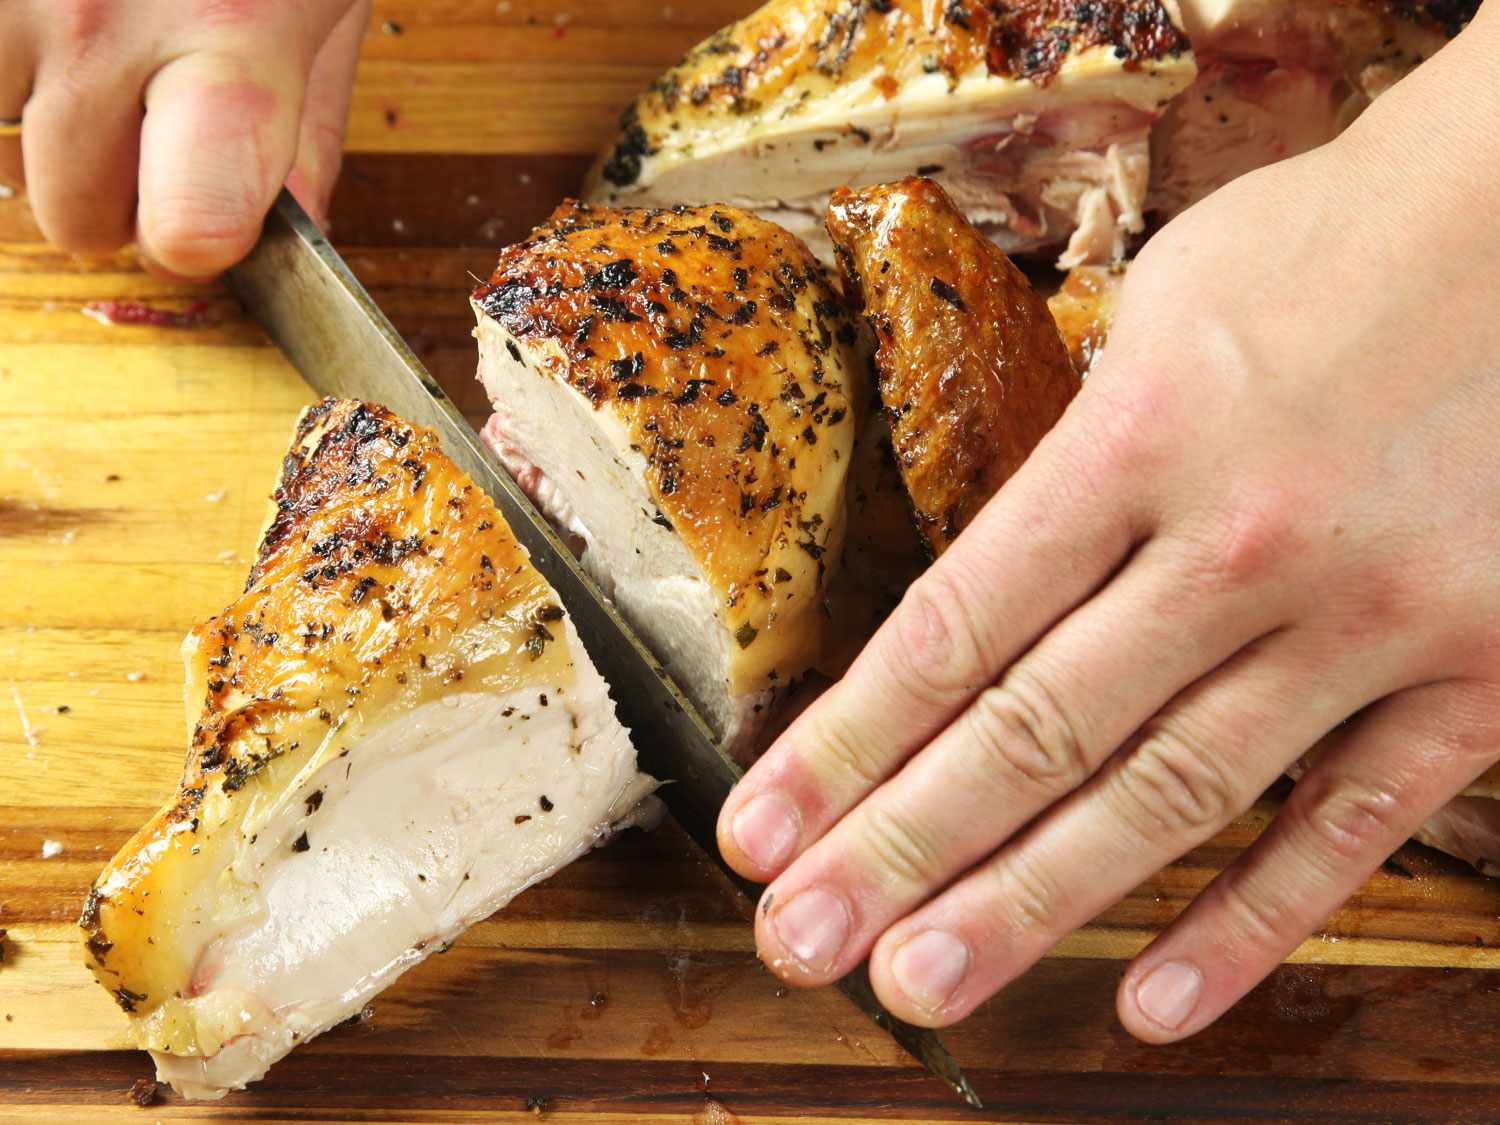 Cutting a chicken breast in half while carving a spatchcocked roast chicken.